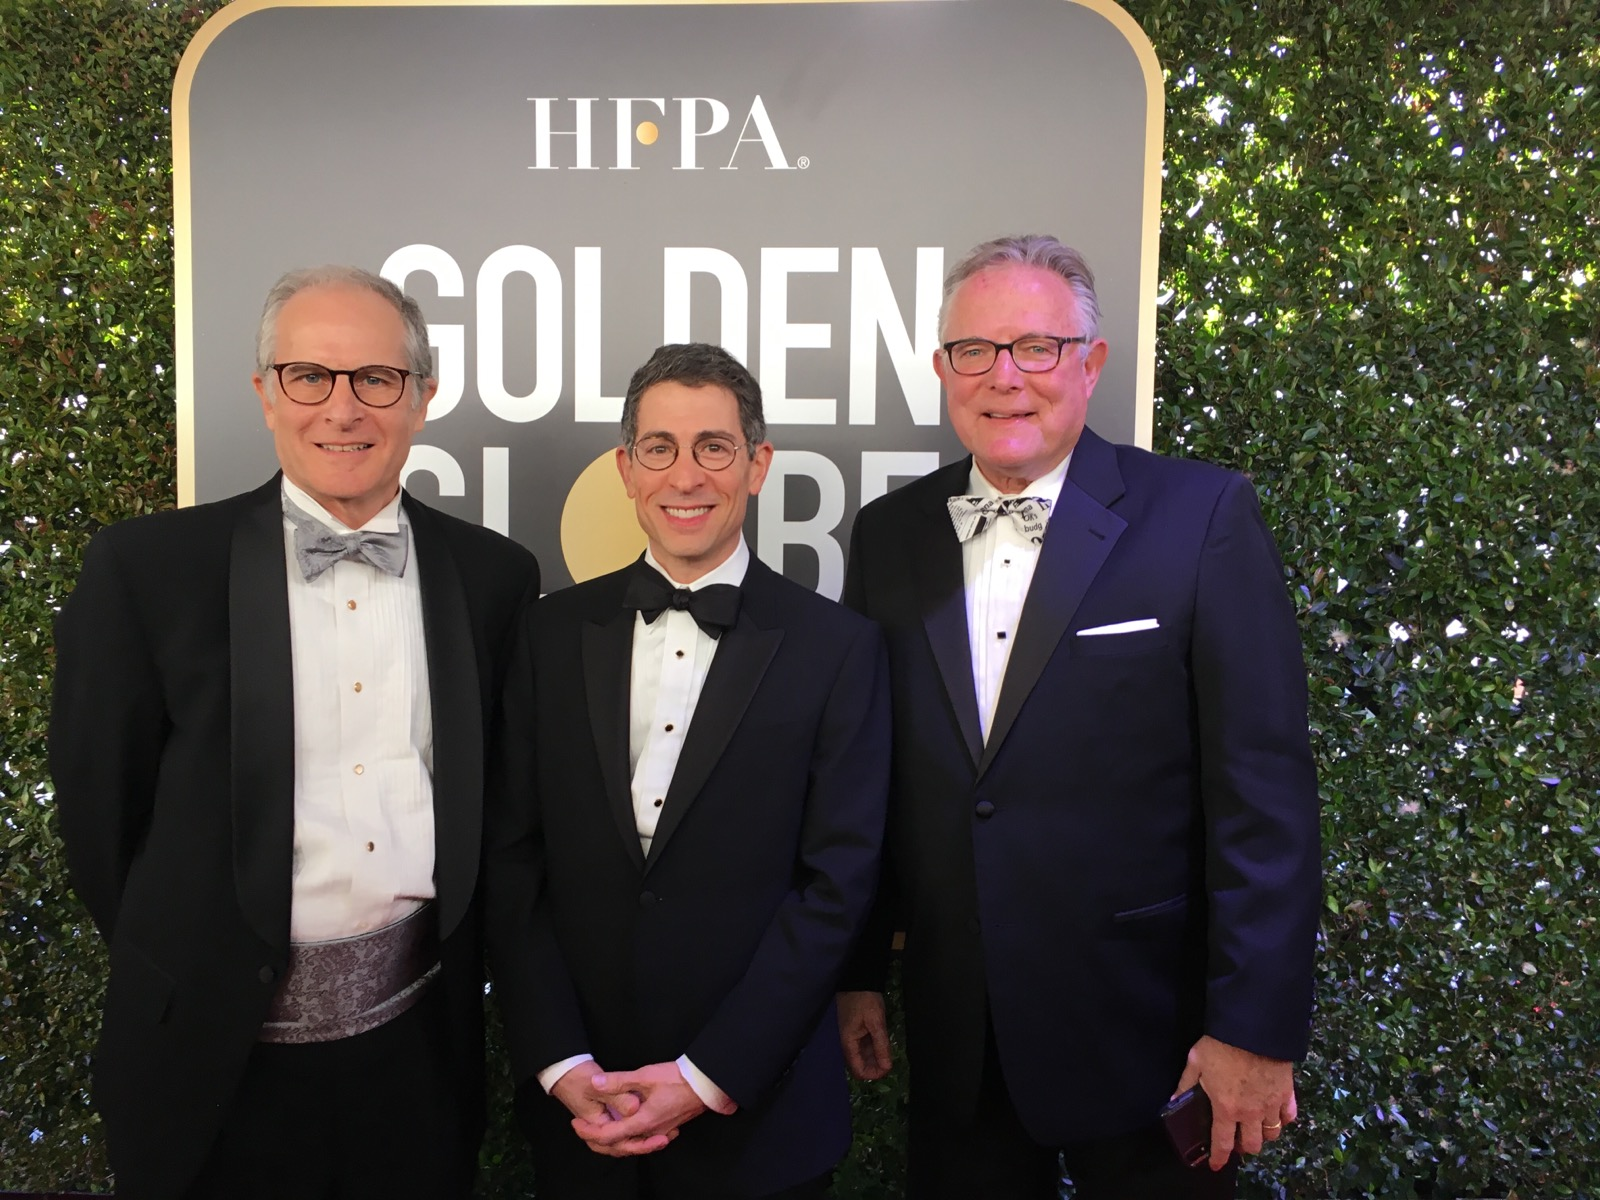 Reporters Committee Executive Director Bruce Brown, Reporters Committee Chairman David Boardman and David Sassoon, founder and publisher of InsideClimate News, pose at the 2019 Golden Globe Awards. The Reporters Committee for Freedom of the Press and InsideClimate News will receive a $1 Million grant from the Hollywood Foreign Press Association.